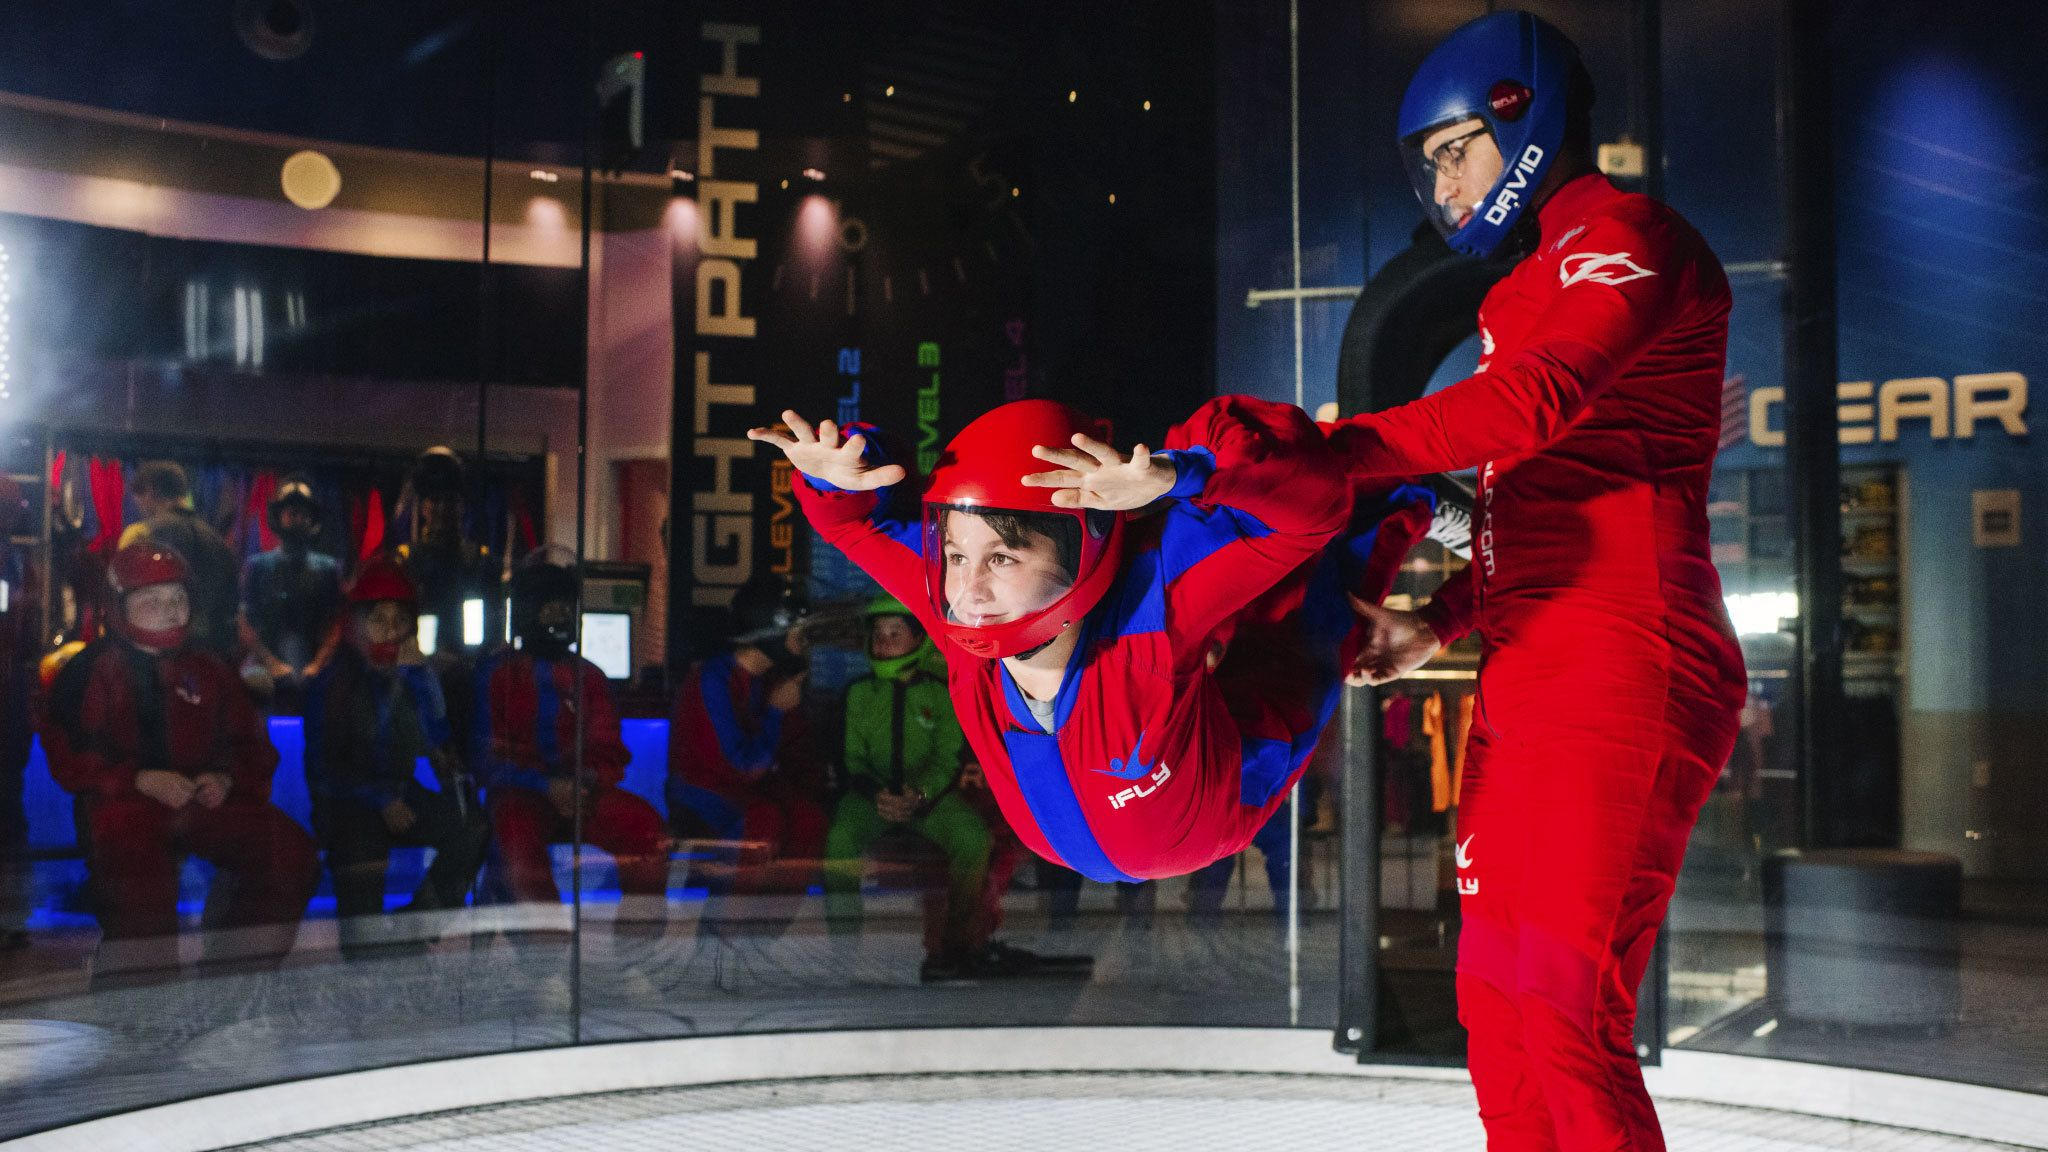 Child flying in indoor skydiving room at iFLY